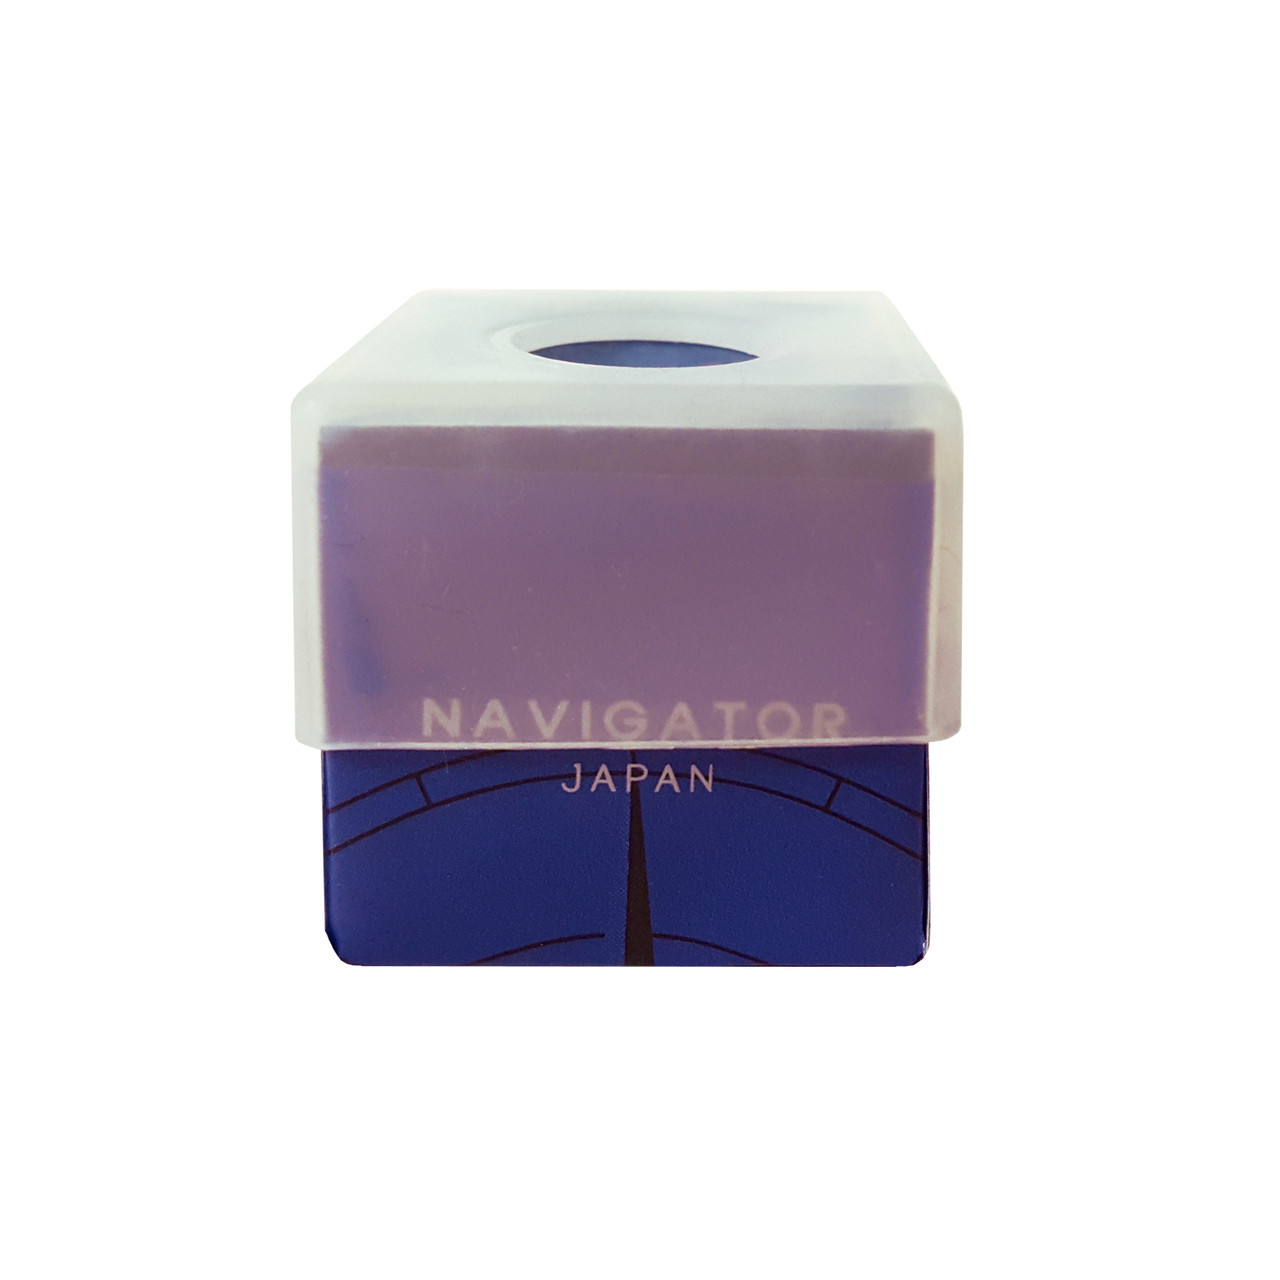 Navigator Chalk - 1 Piece - Full item Image with silicone cover